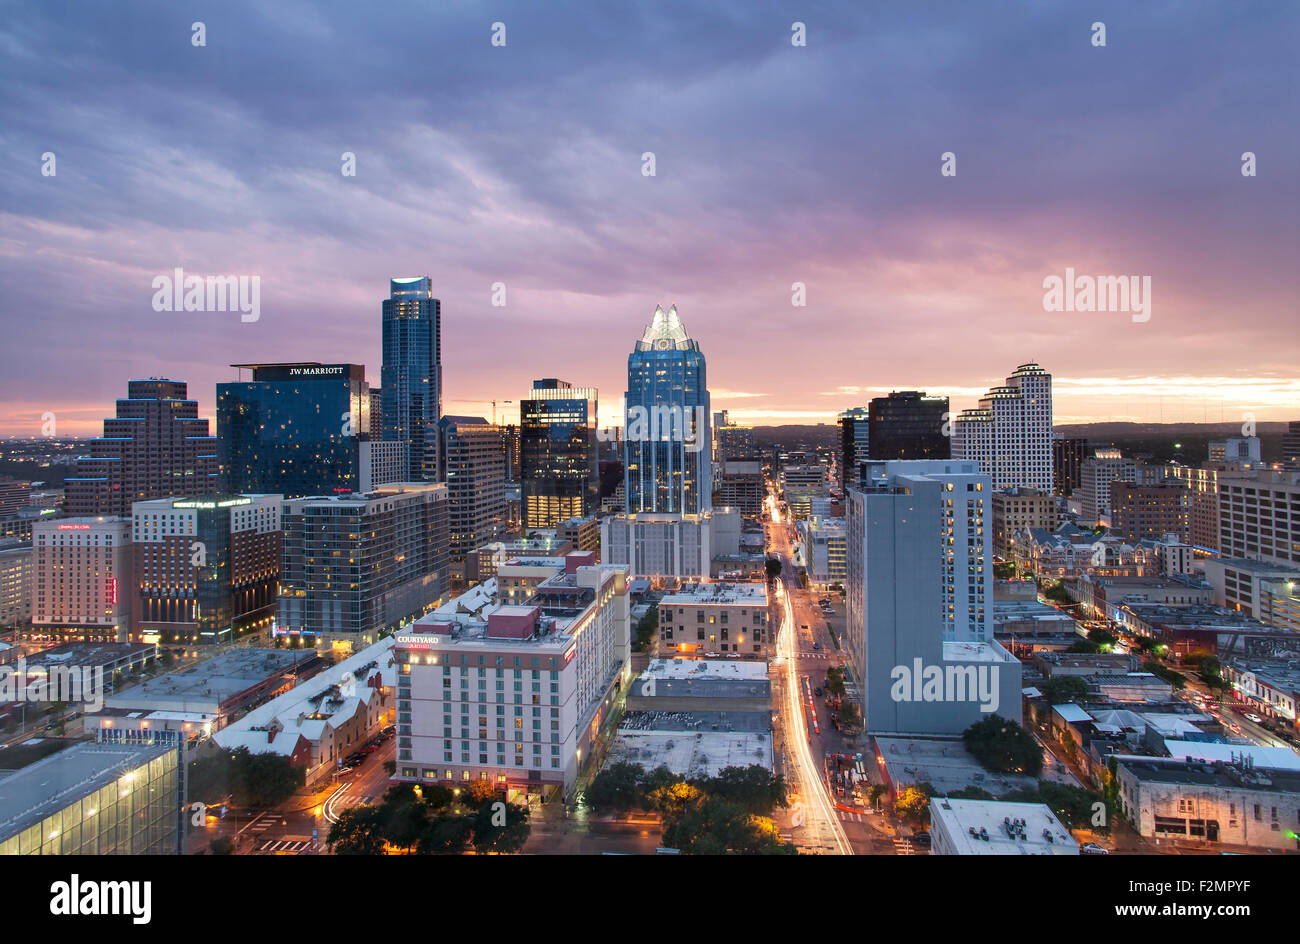 Austin skyline at Twilight Photo Stock